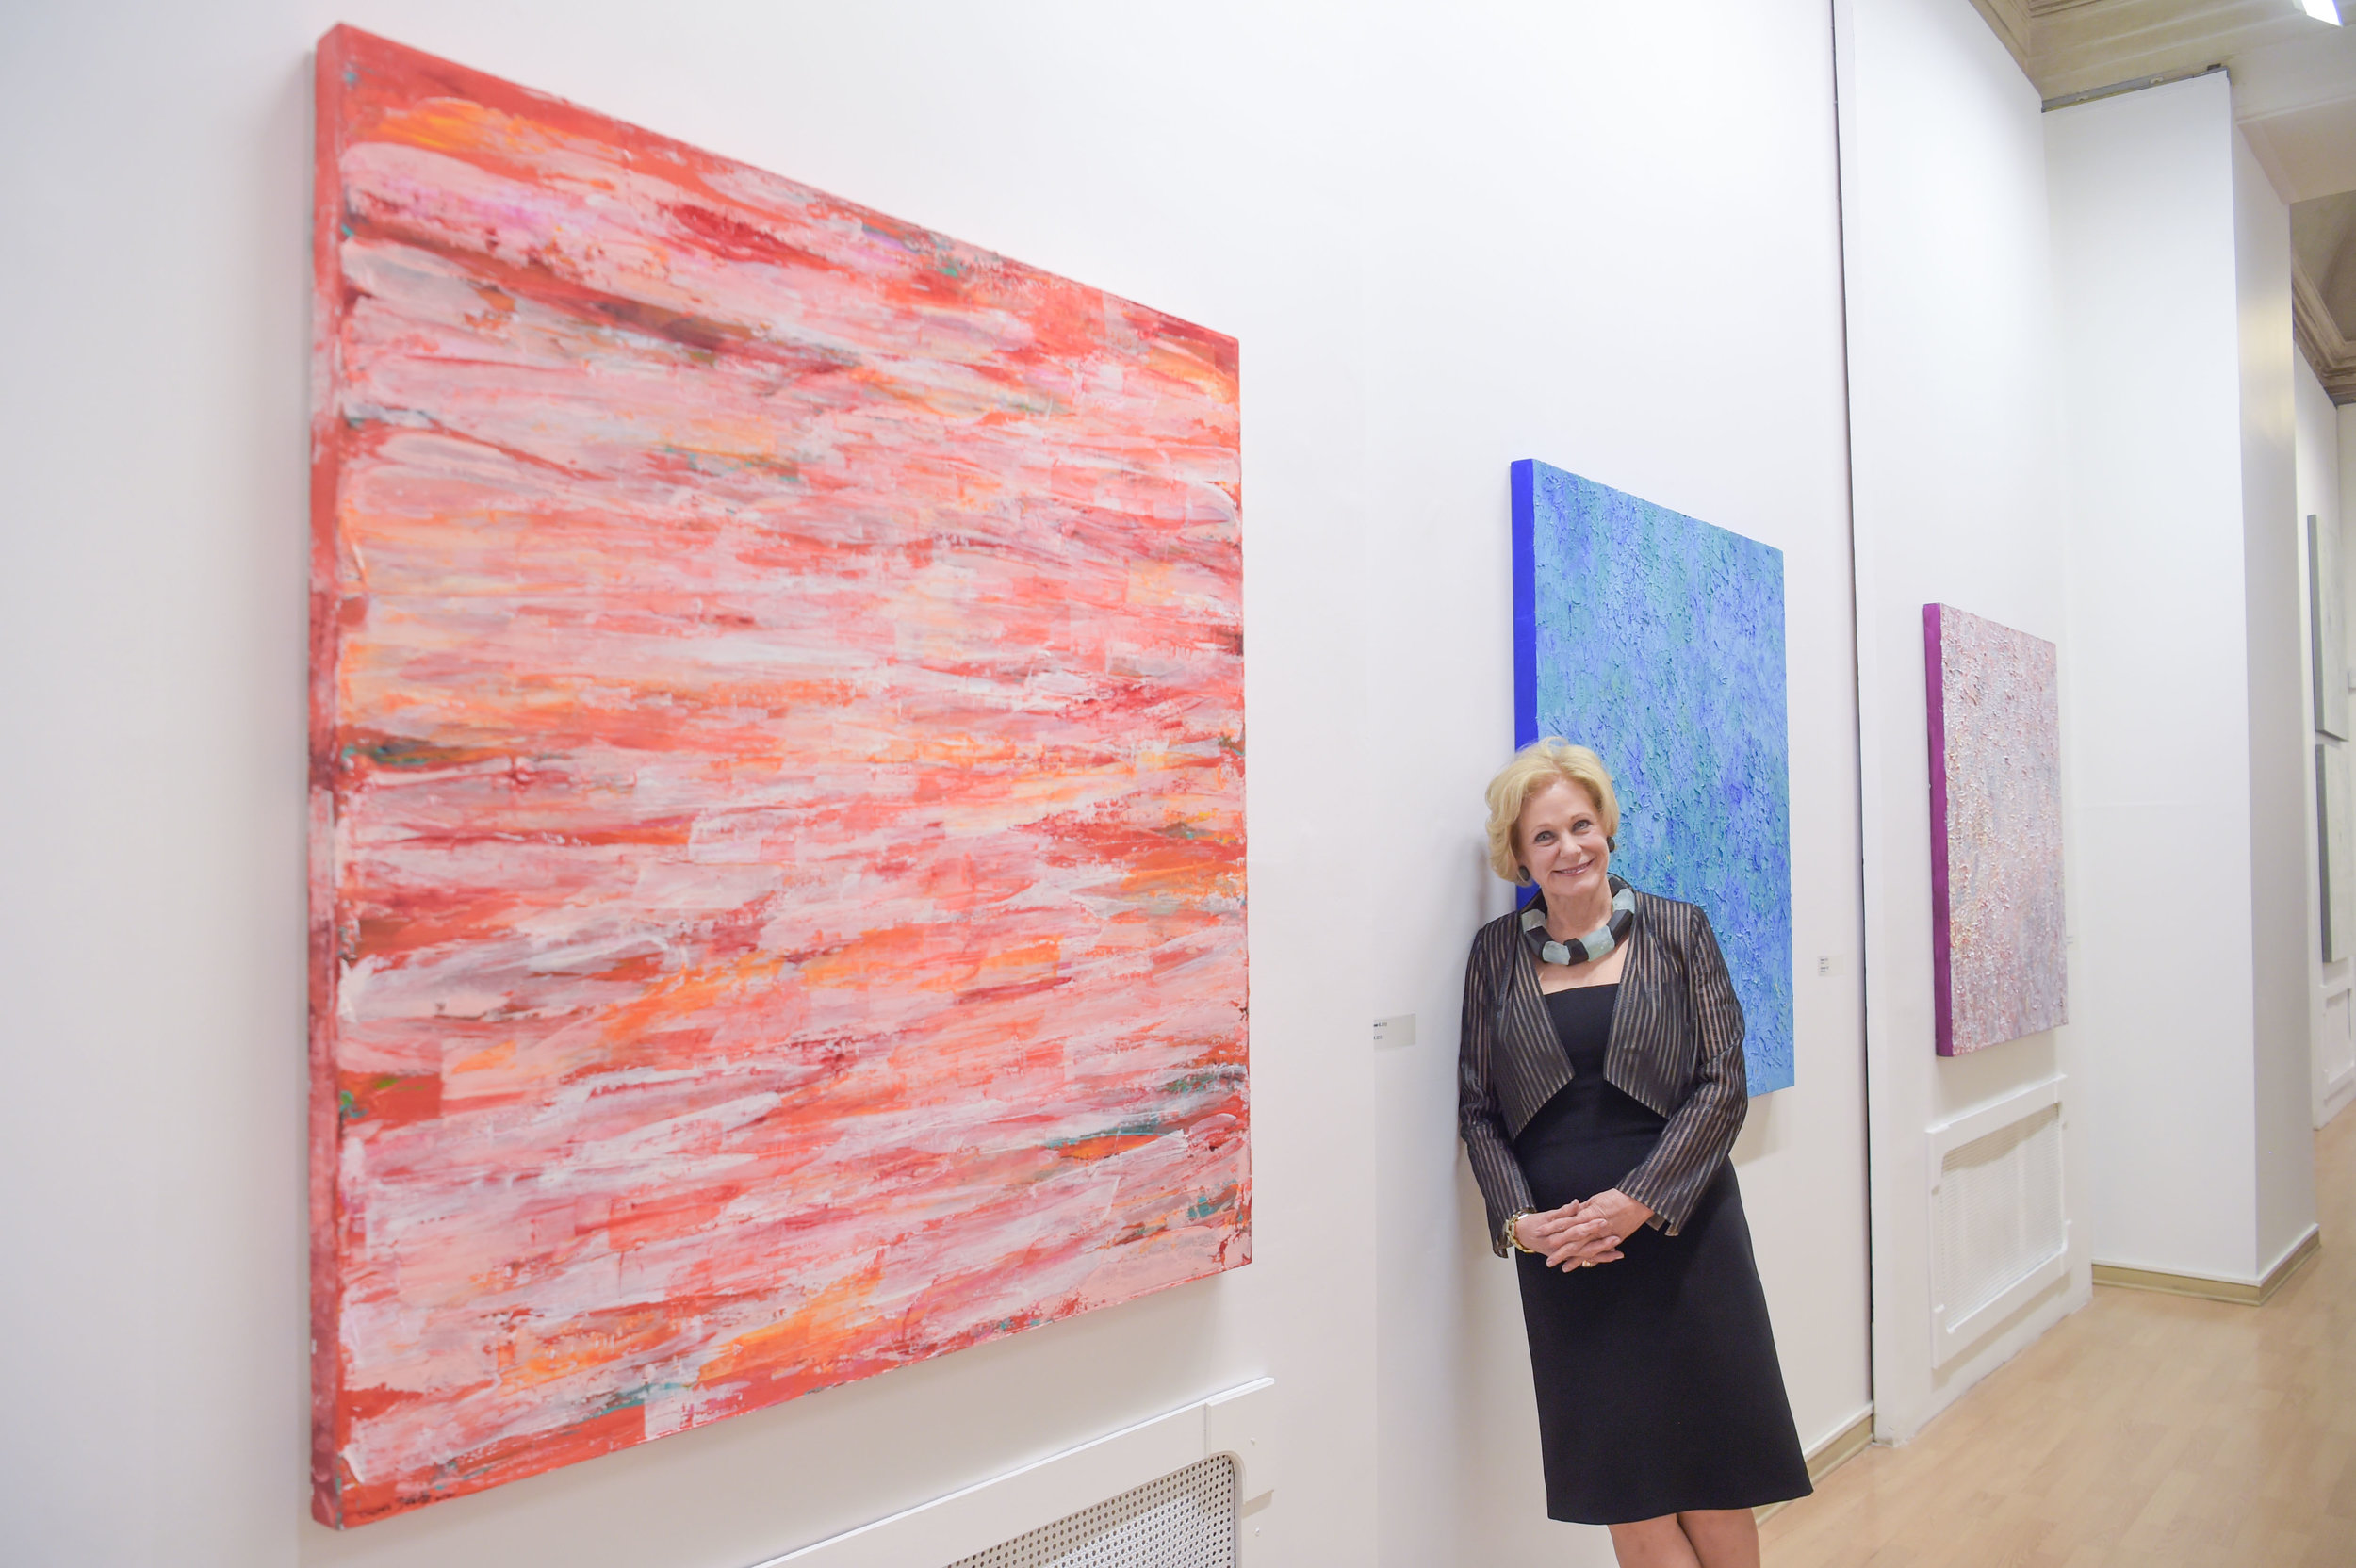 Artist Susan Swartz in front of her artwork at the Ludwig Museum at the State Russian Museum